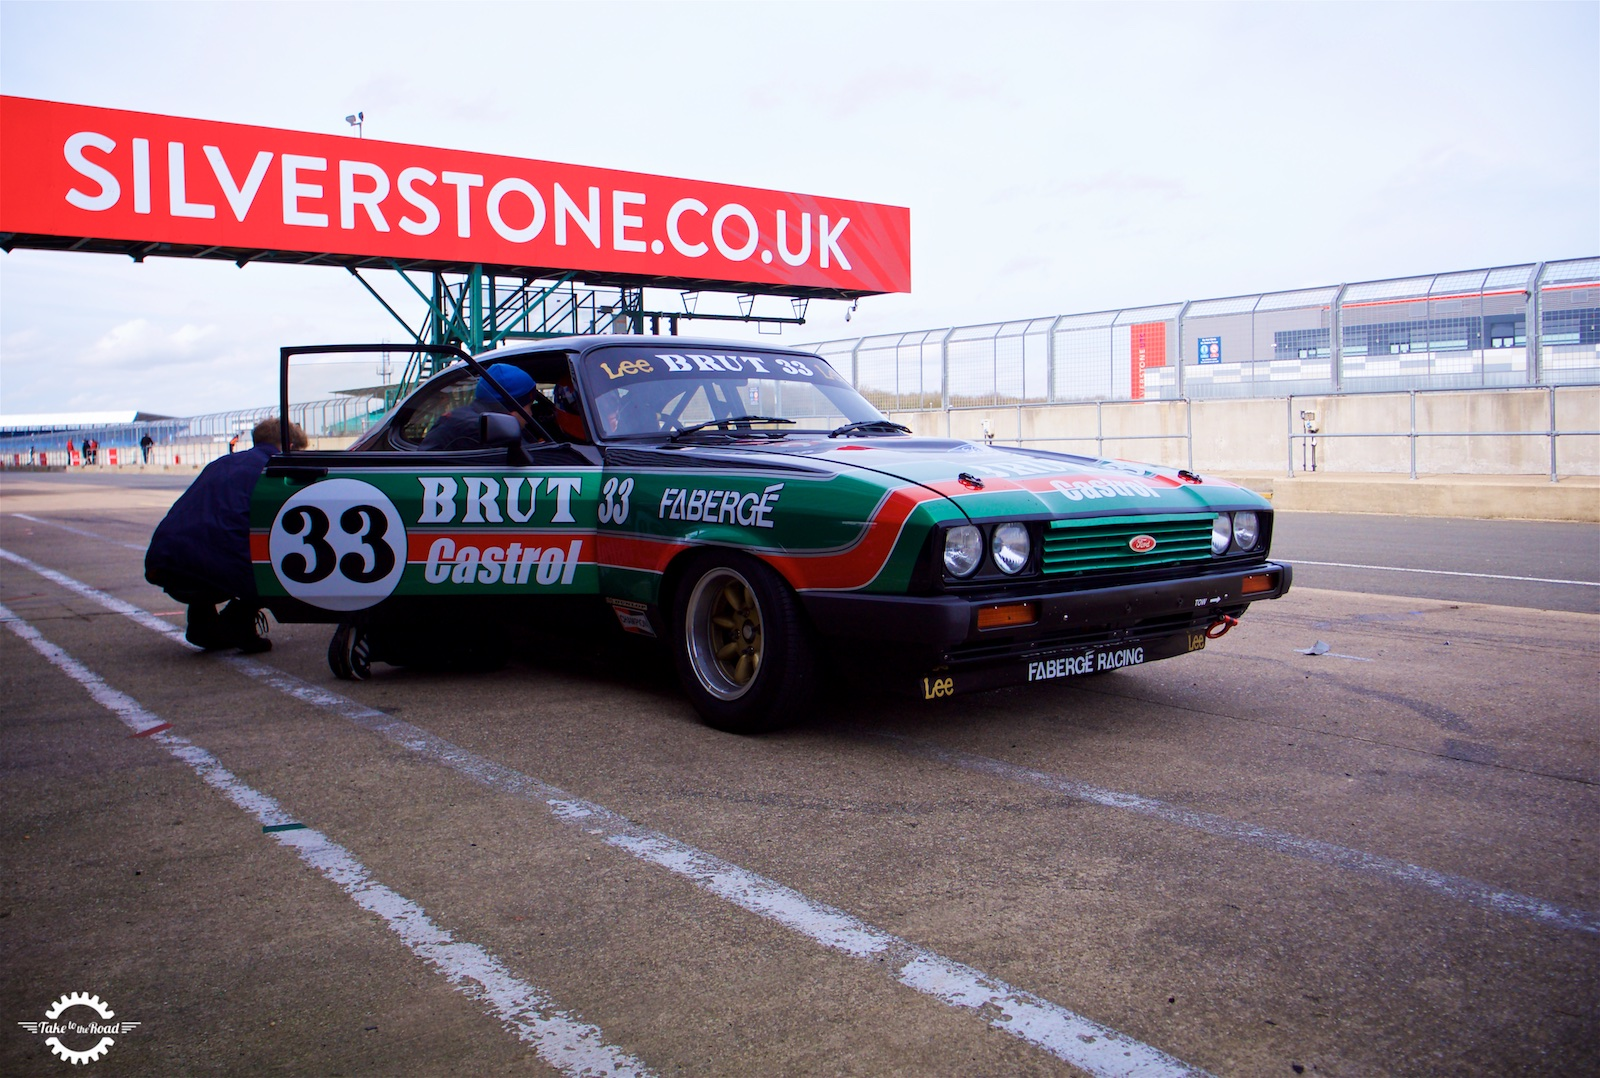 Take to the Road Feature Ford Capri Faberge Testing at Silverstone